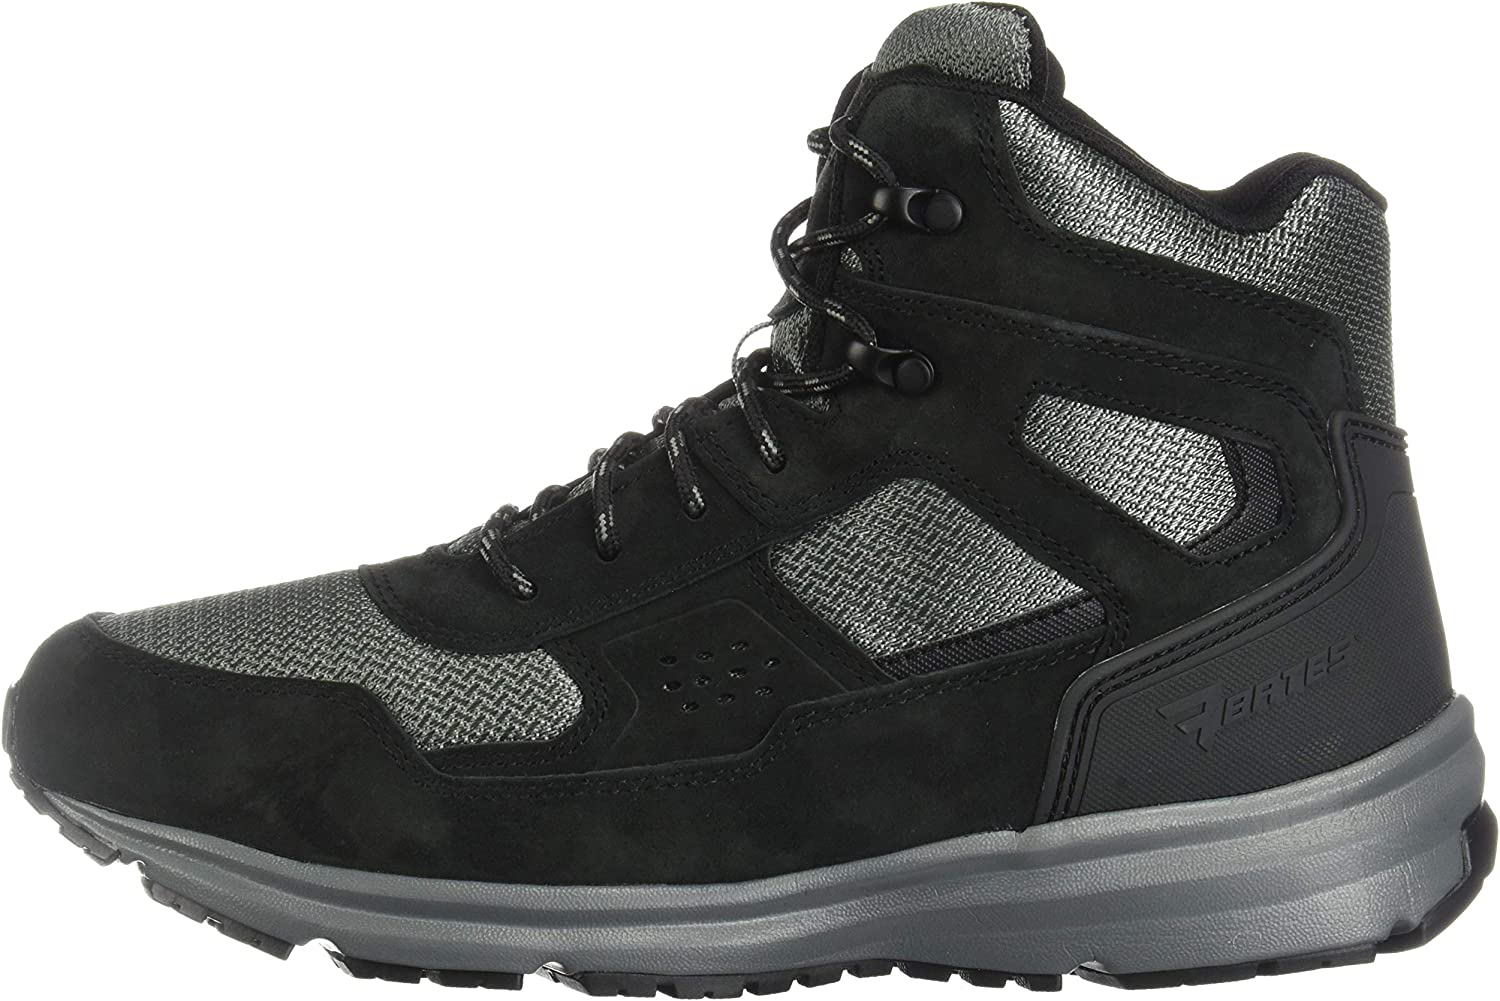 Men Bates Mens Raide Sport Fire and Safety Boot Clothing, Shoes & Jewelry  samel.com.br